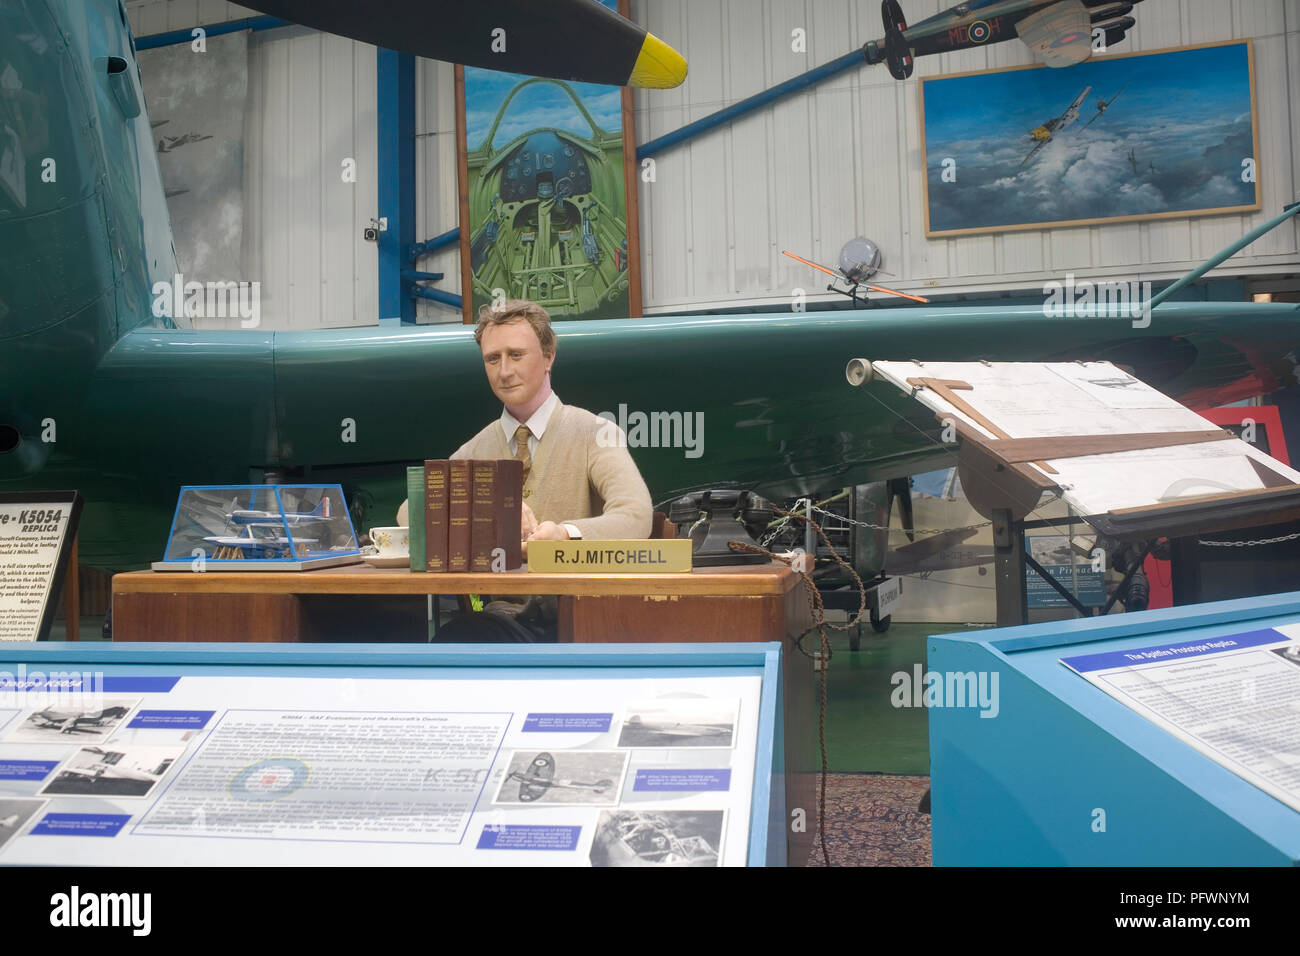 Mock up of Spitfire engineer R J Mitchell in Merston Hall at Tangmere military aviation museum - Stock Image